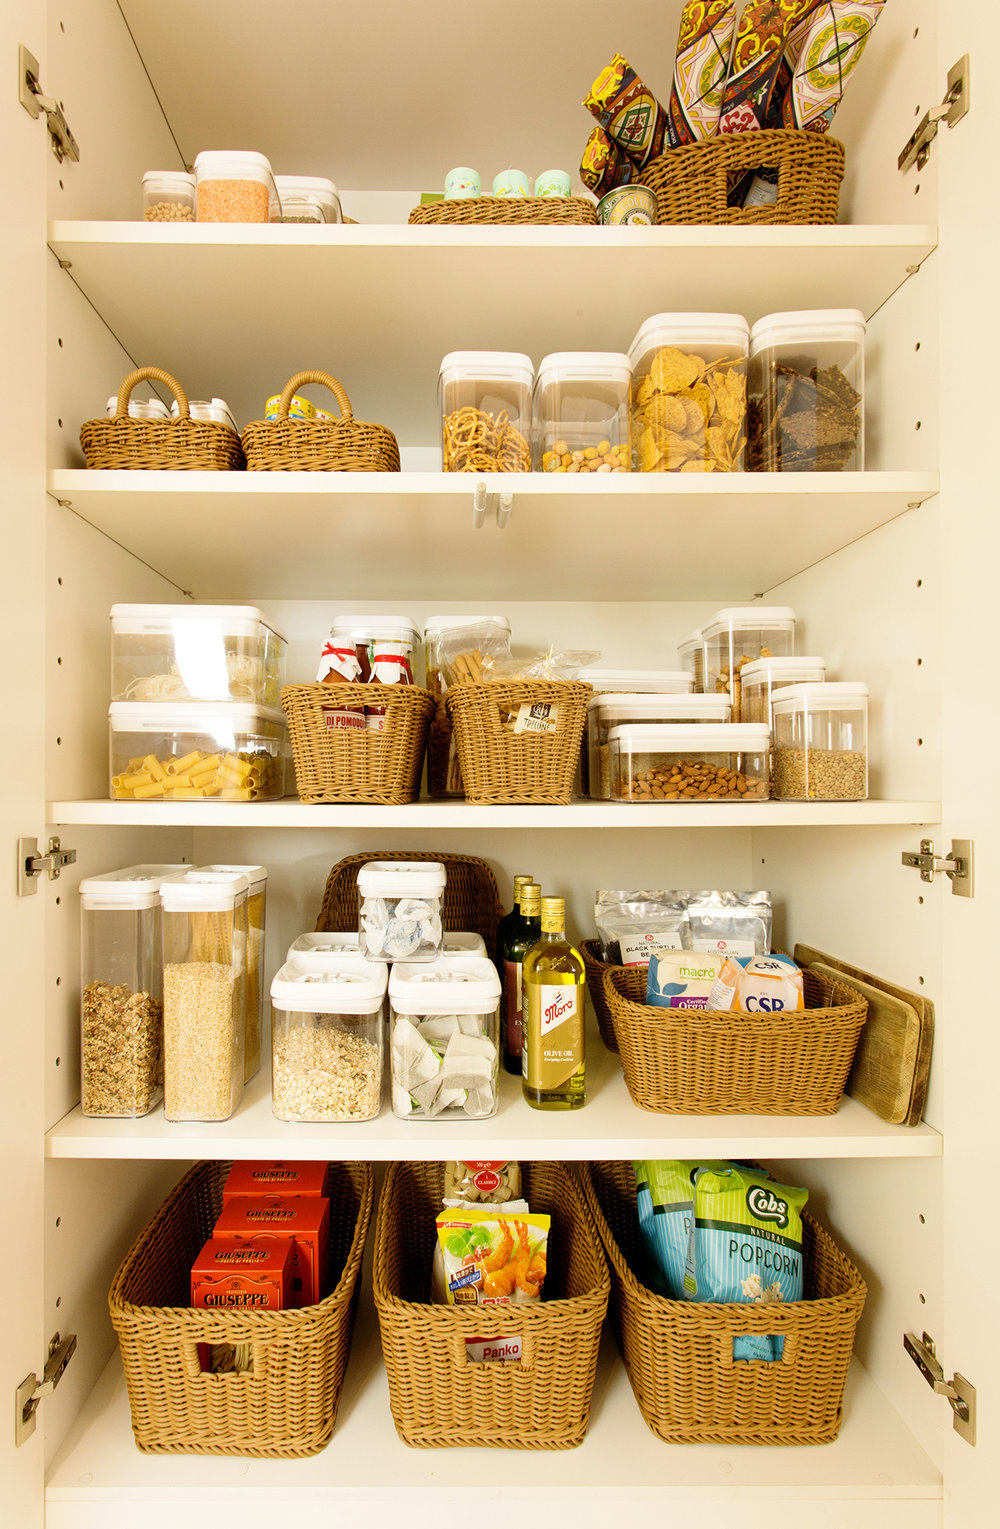 Chyka HSW Pantry Fridge 006.jpg